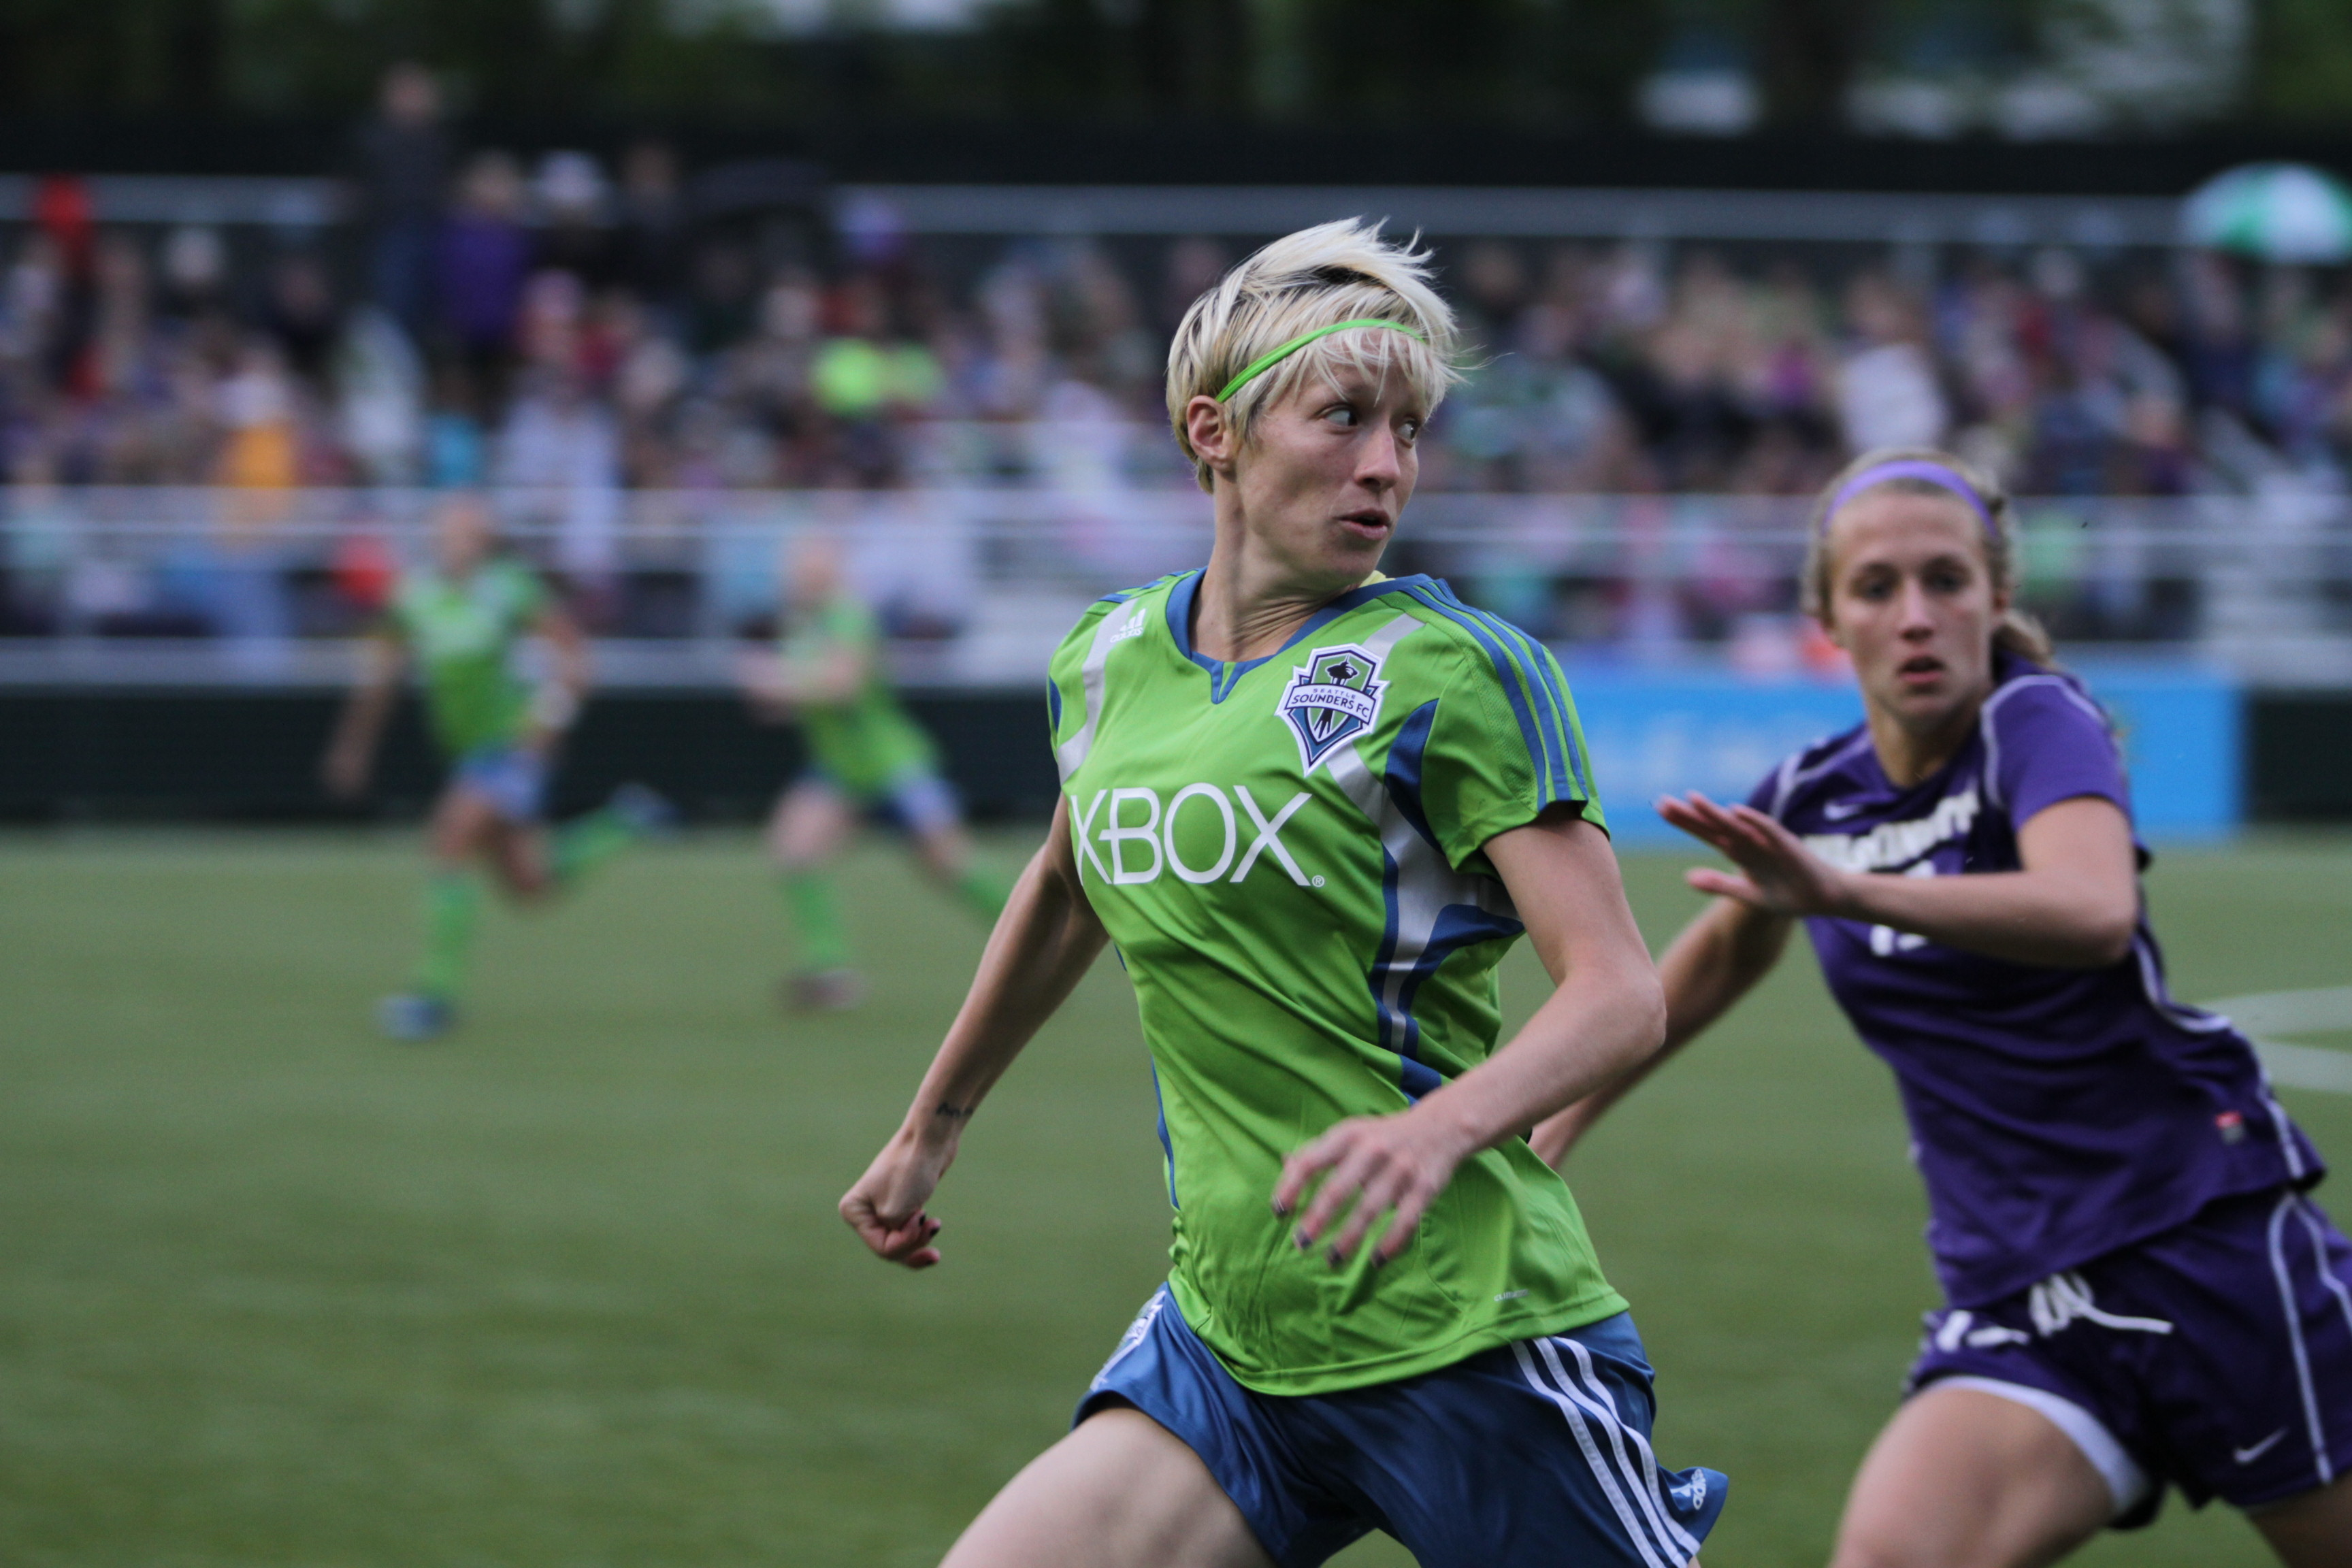 a soccer player with cropped blond hair runs down the field in a lime green shirt